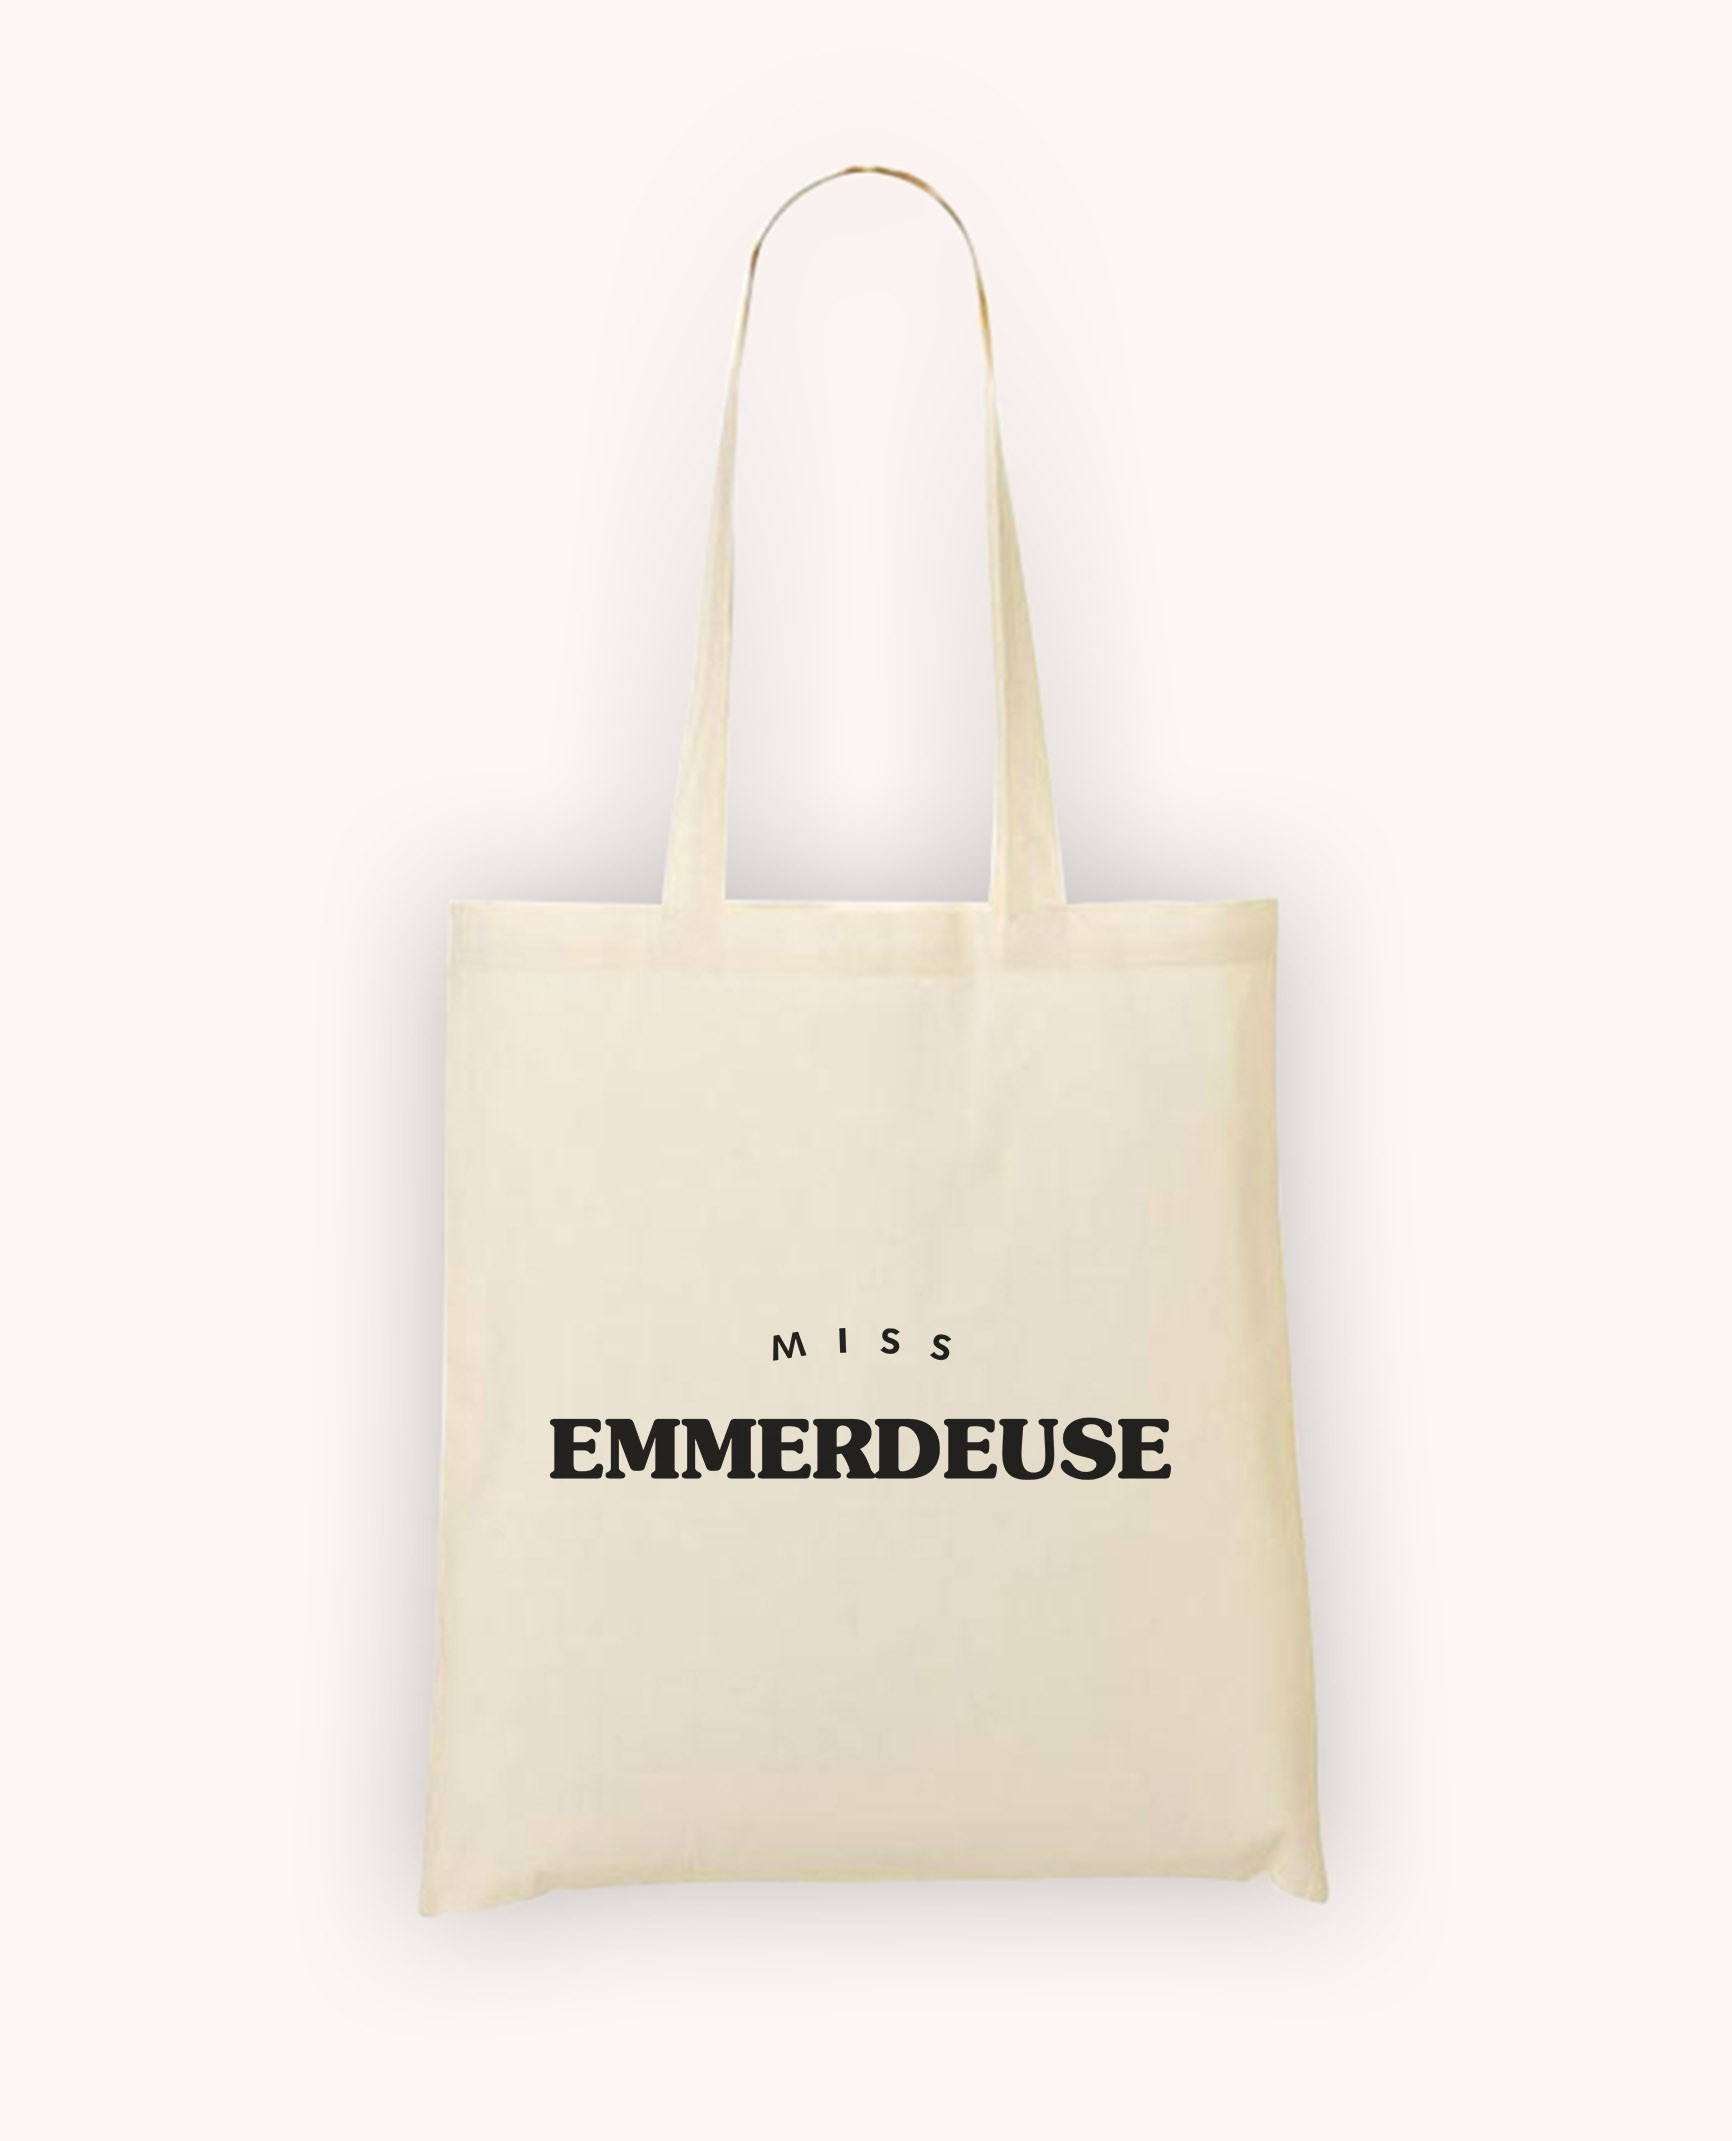 Totebag Miss Emmerdeuse